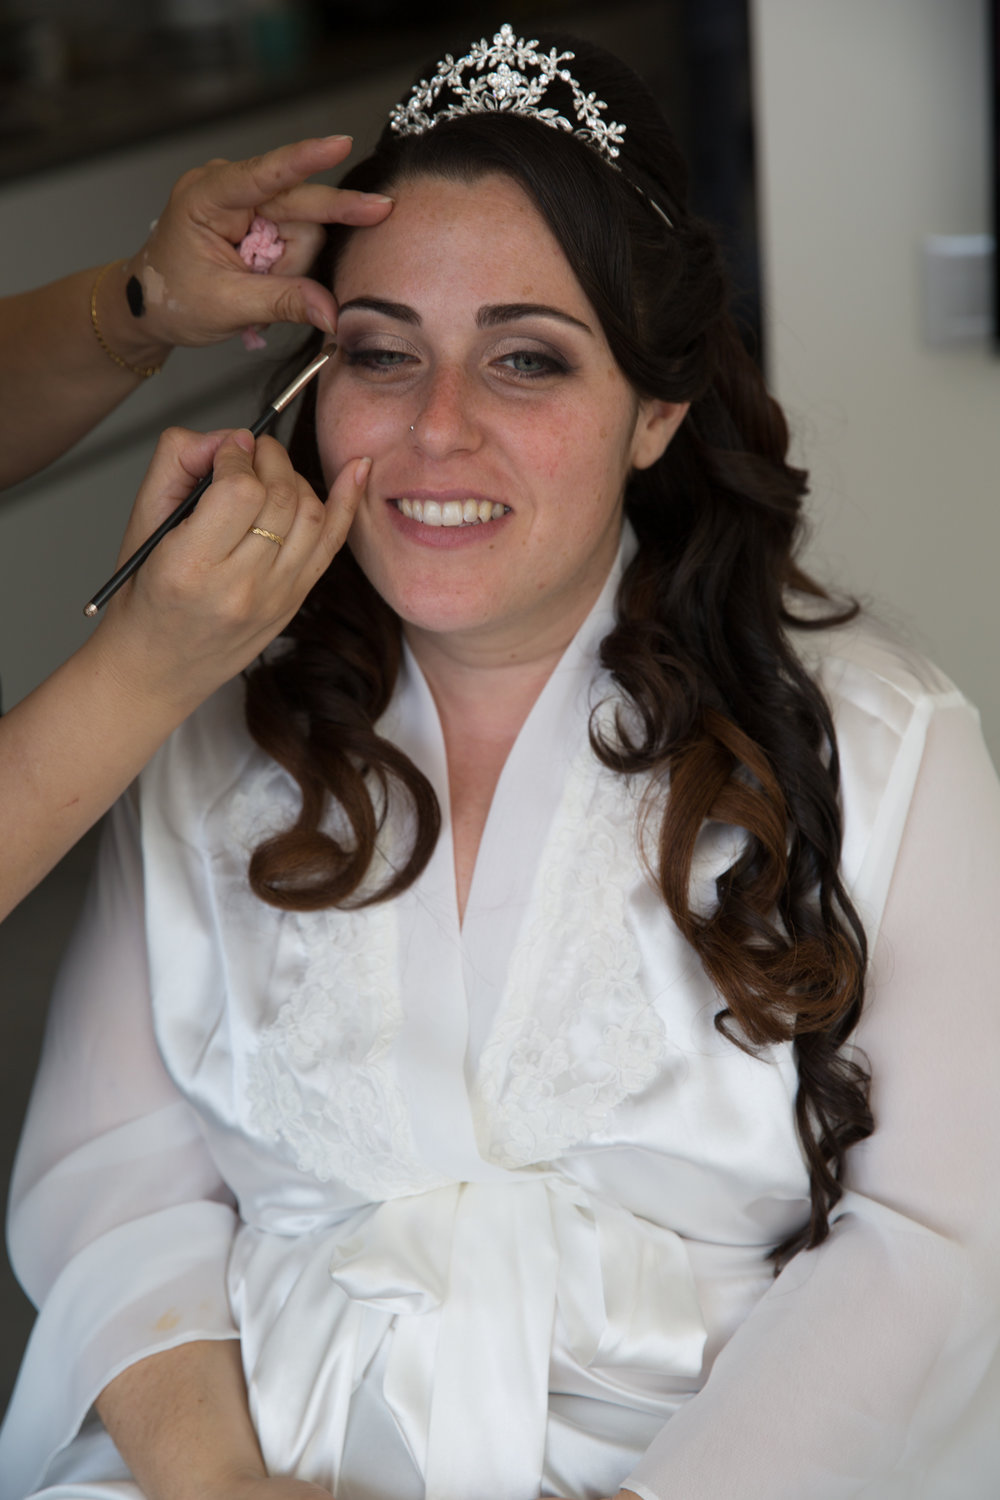 Bride-getting-ready-make-up.jpg